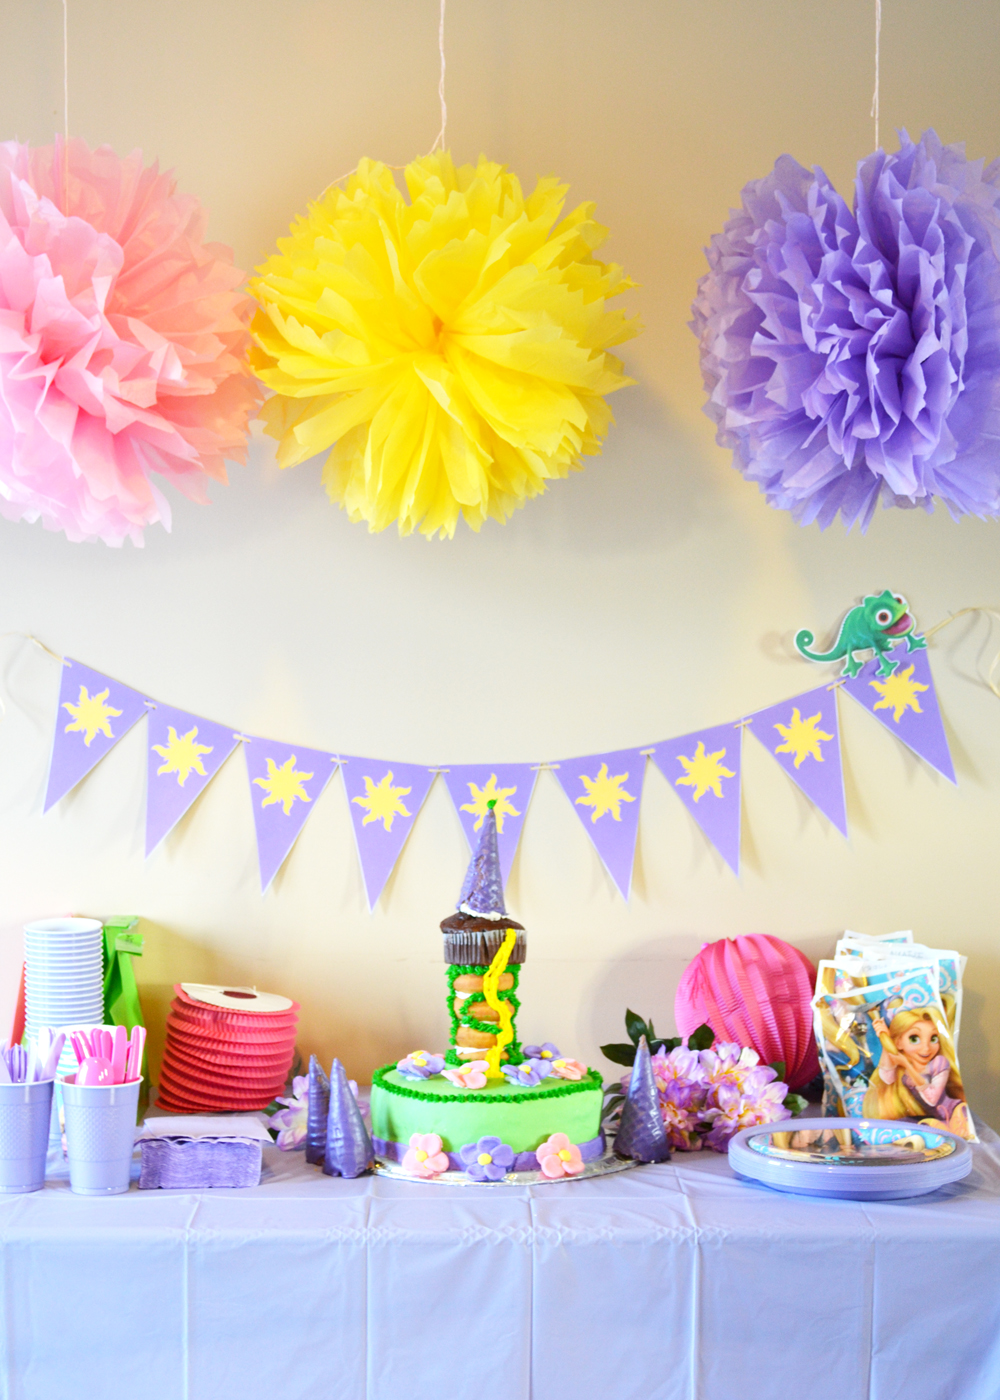 Throw a Rapunzel Theme Party